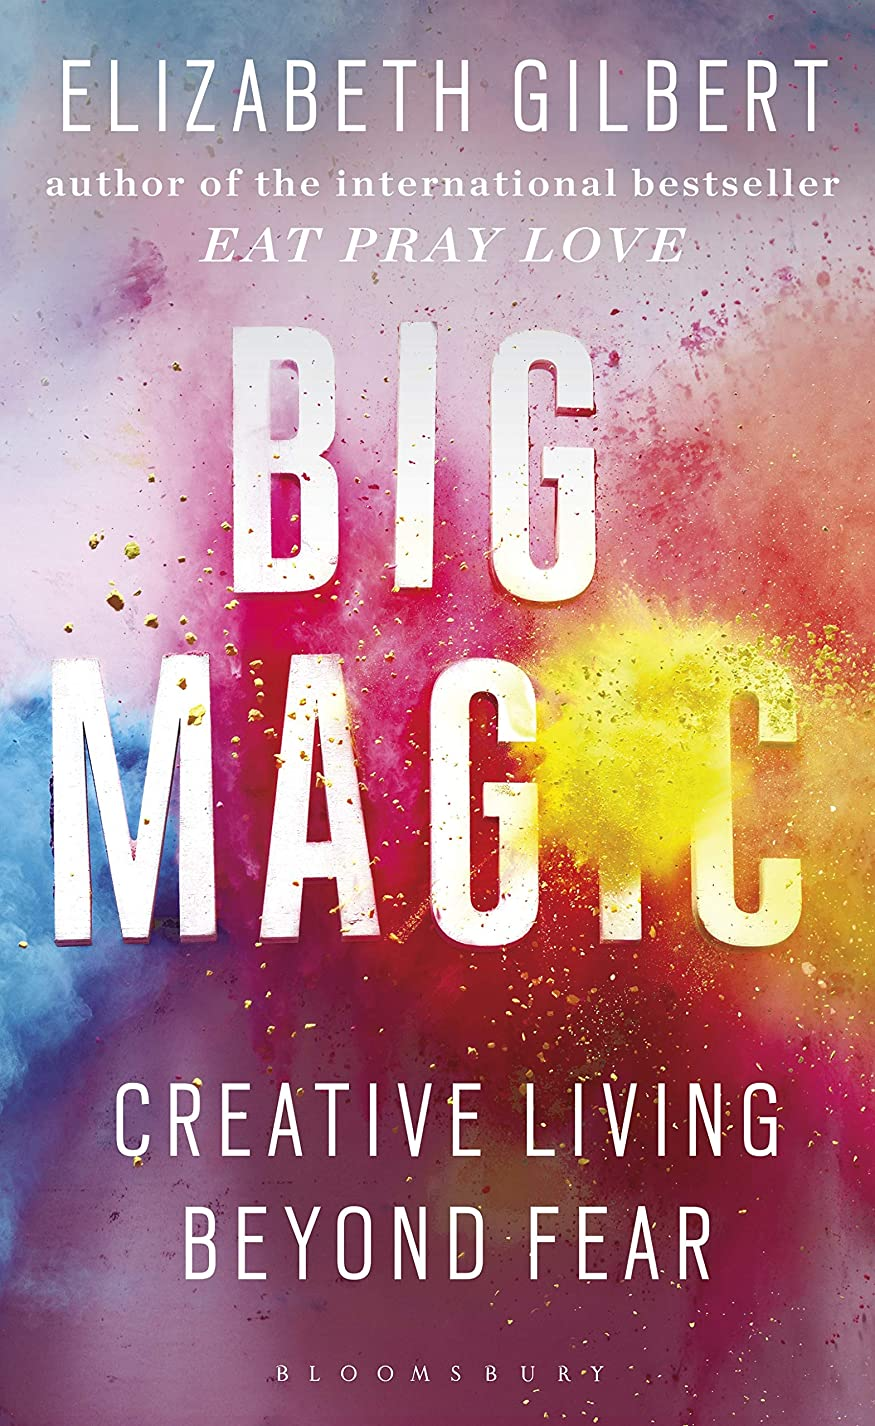 めったにデクリメントユーモラスBig Magic: Creative Living Beyond Fear (English Edition)